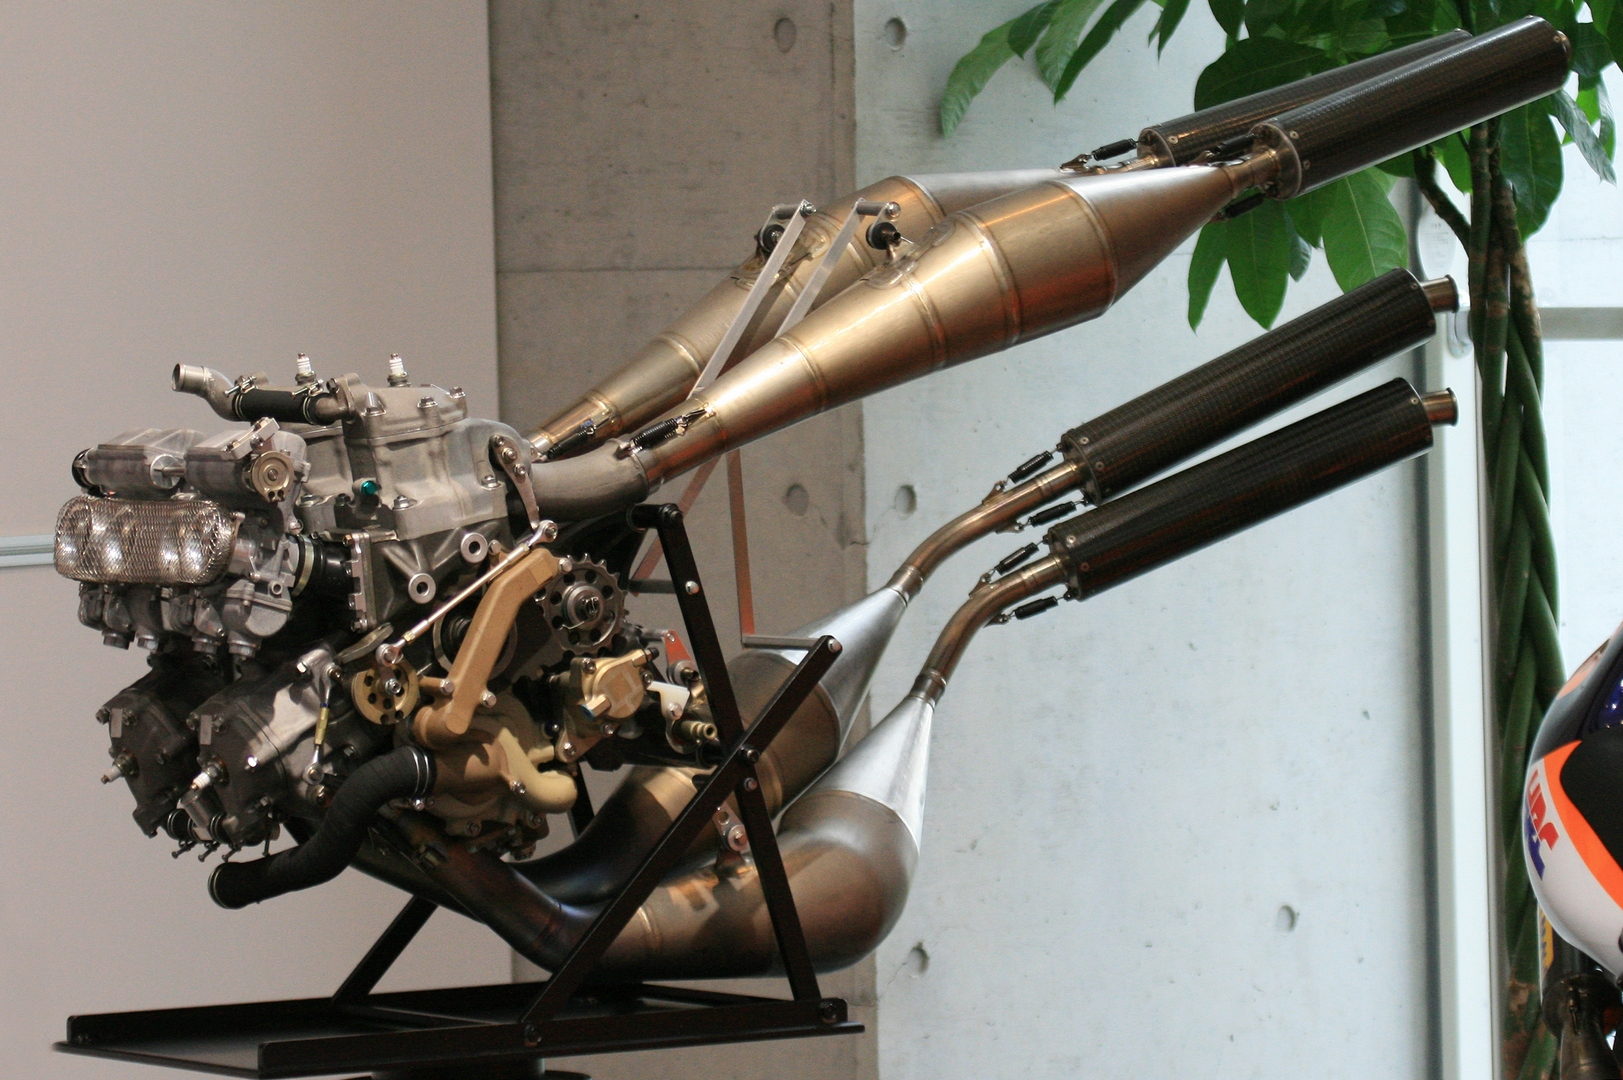 Honda Rumored to Work on a New Two-Stroke Engine, But... - autoevolution